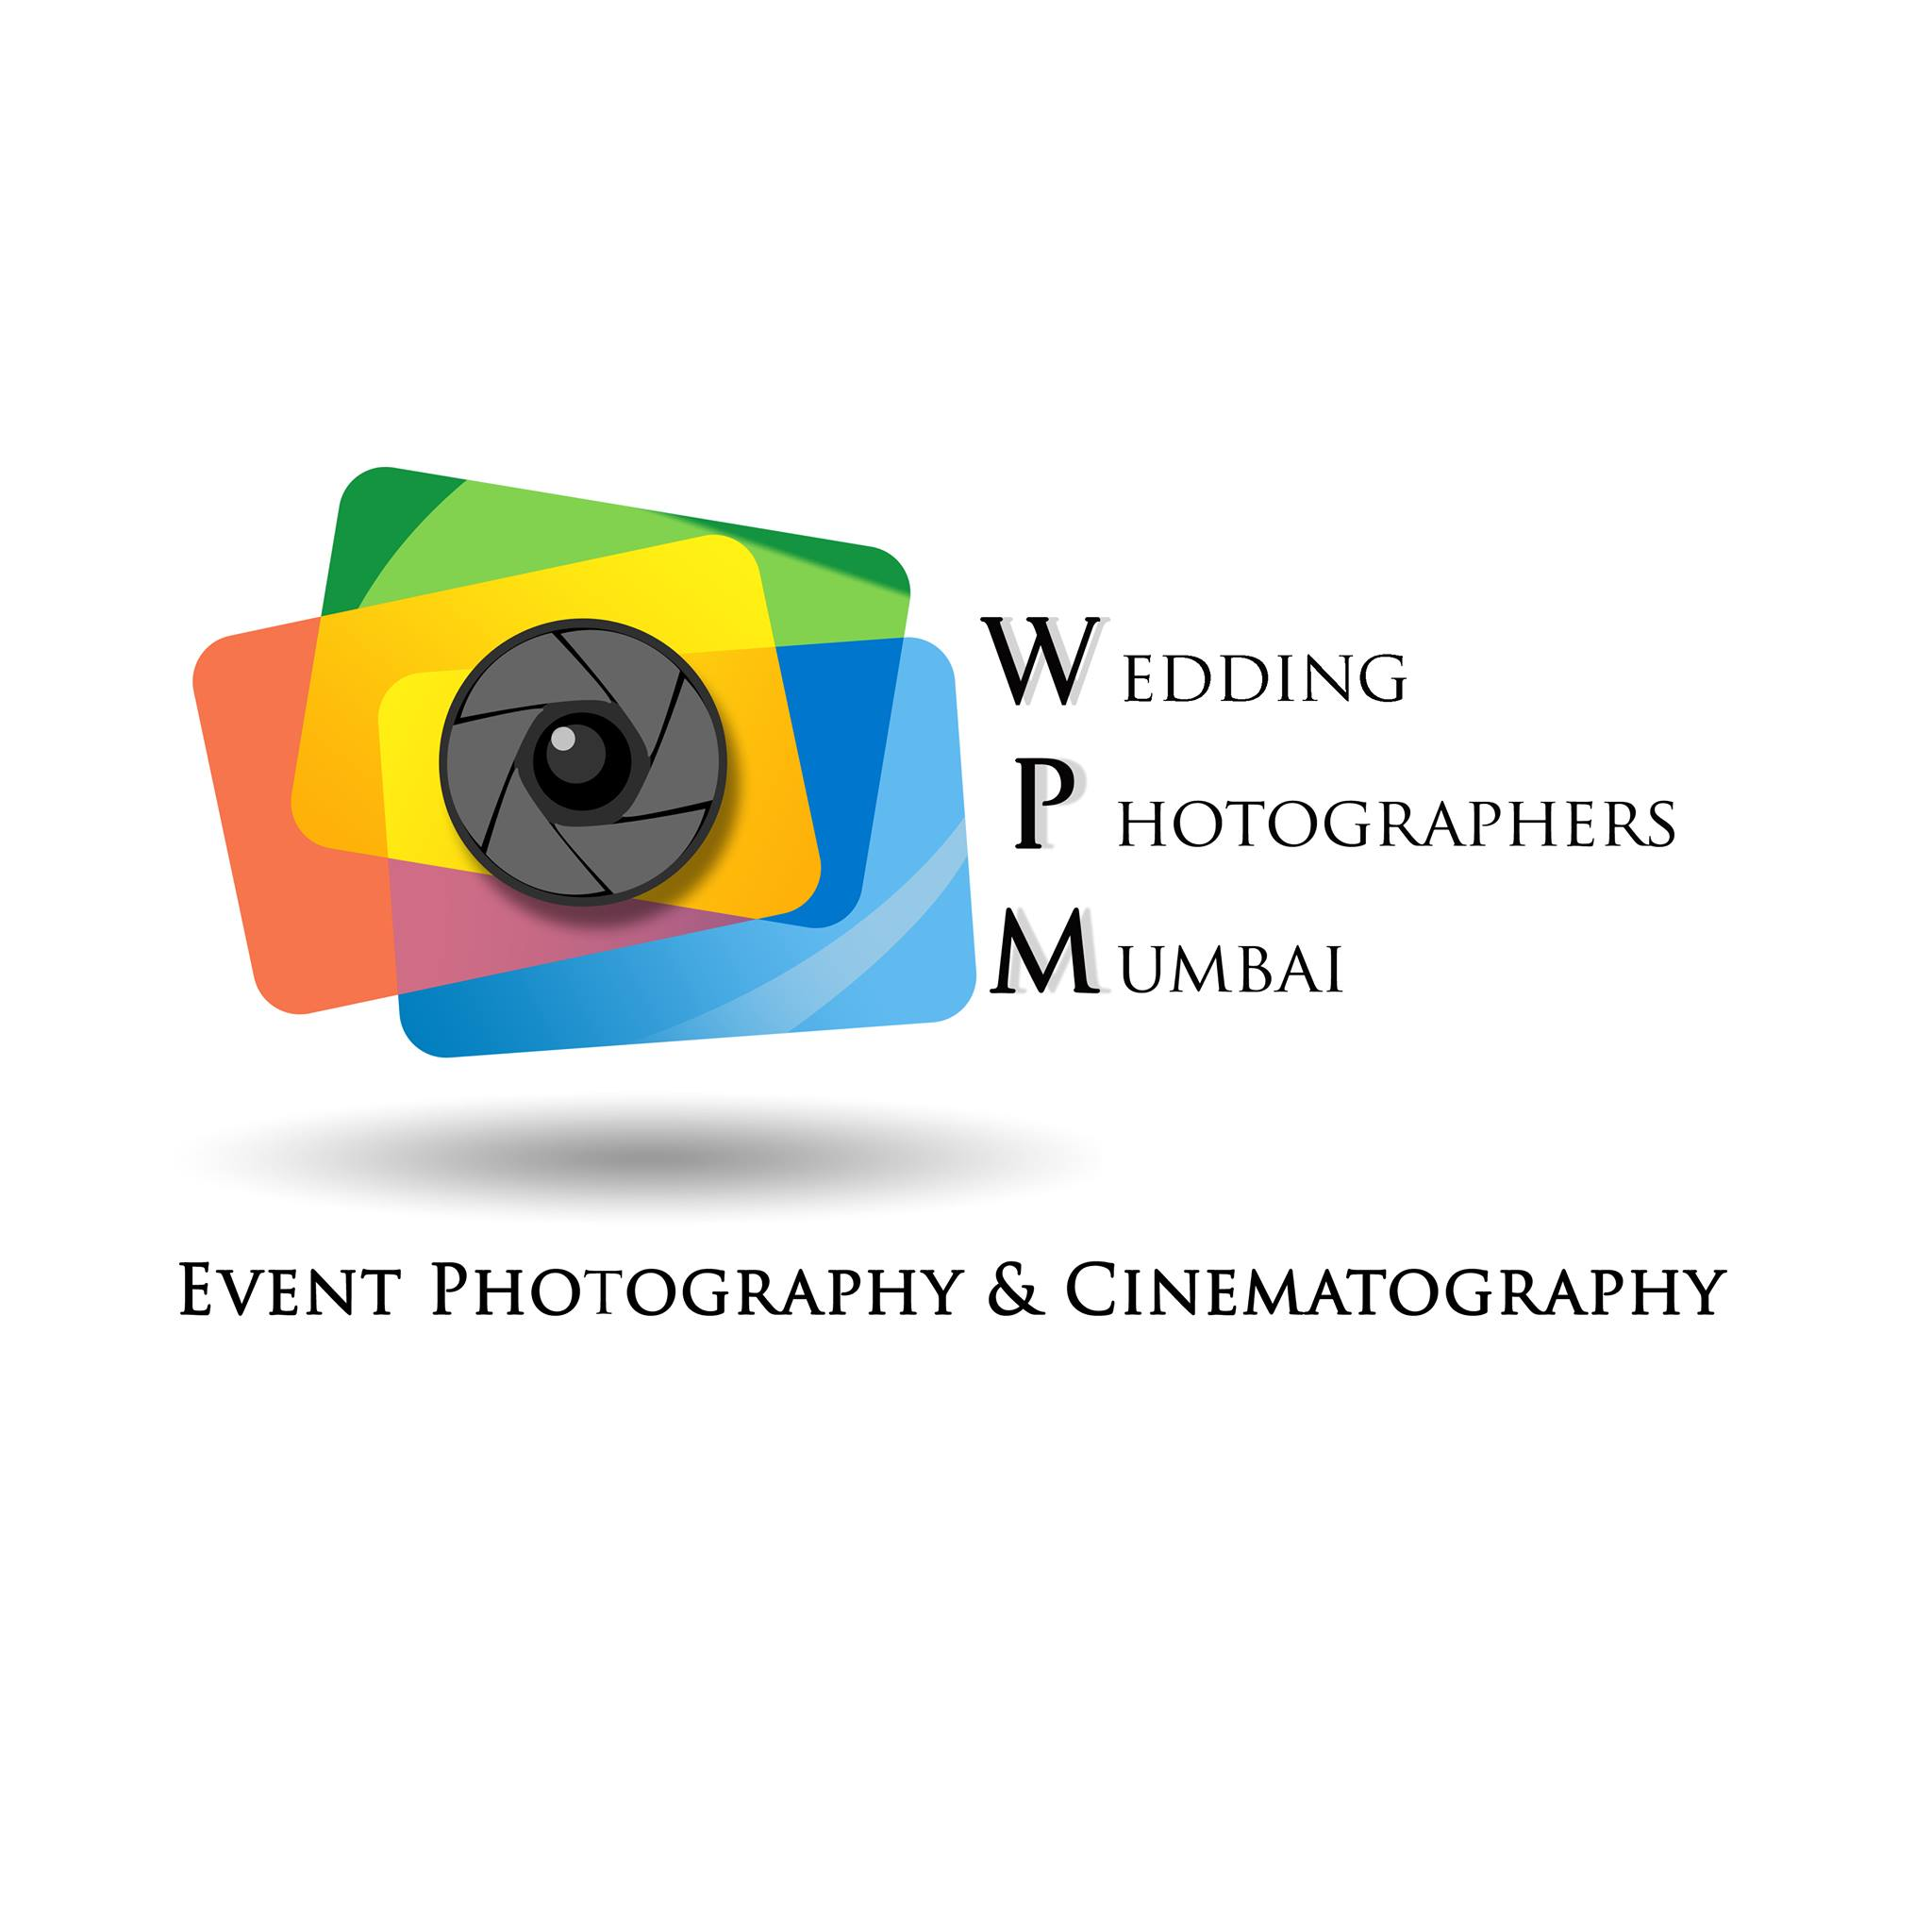 wedding photographers mumbai - logo